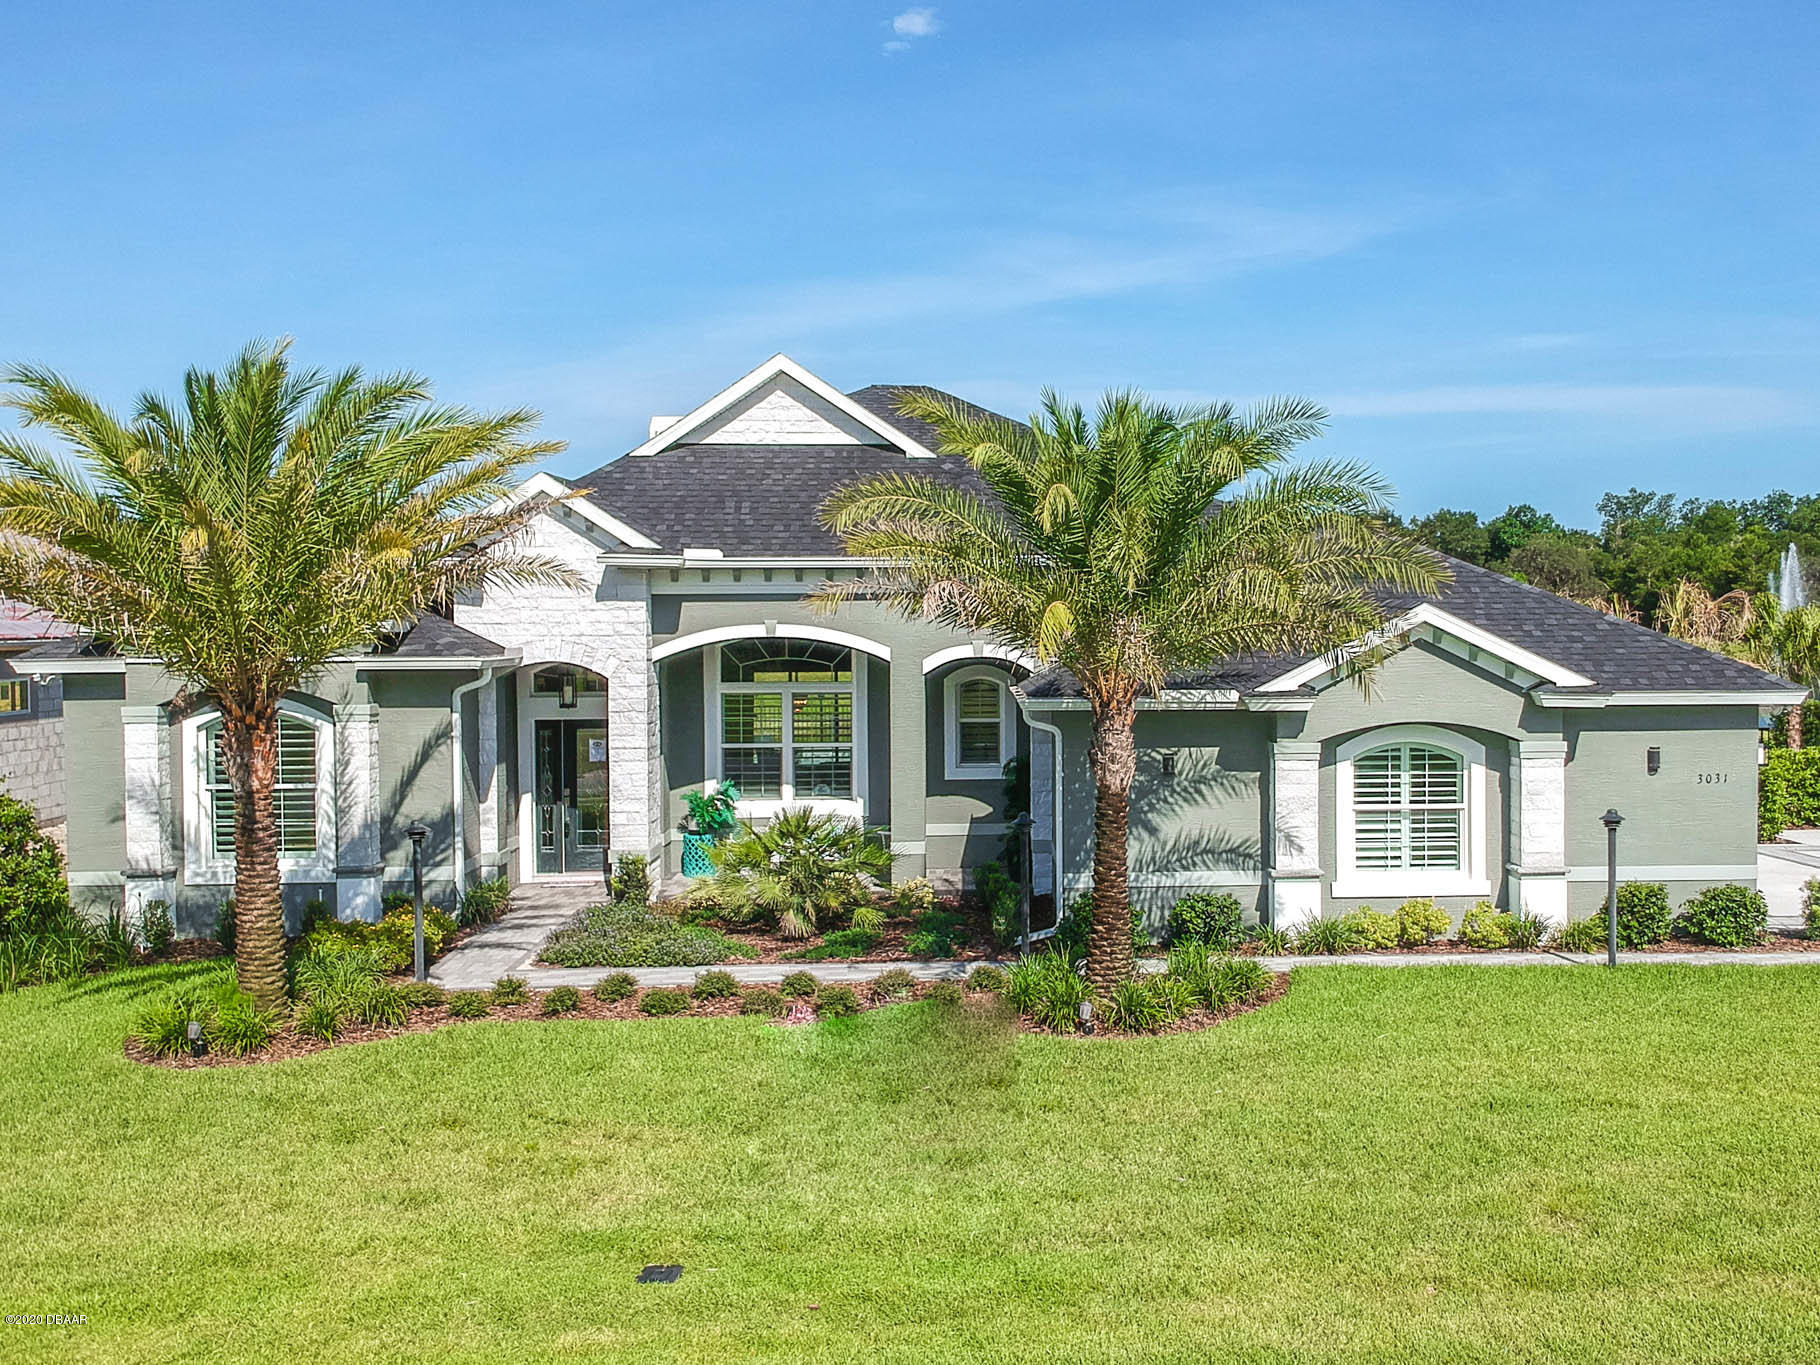 Photo of 3031 Silvermines Avenue, Ormond Beach, FL 32174